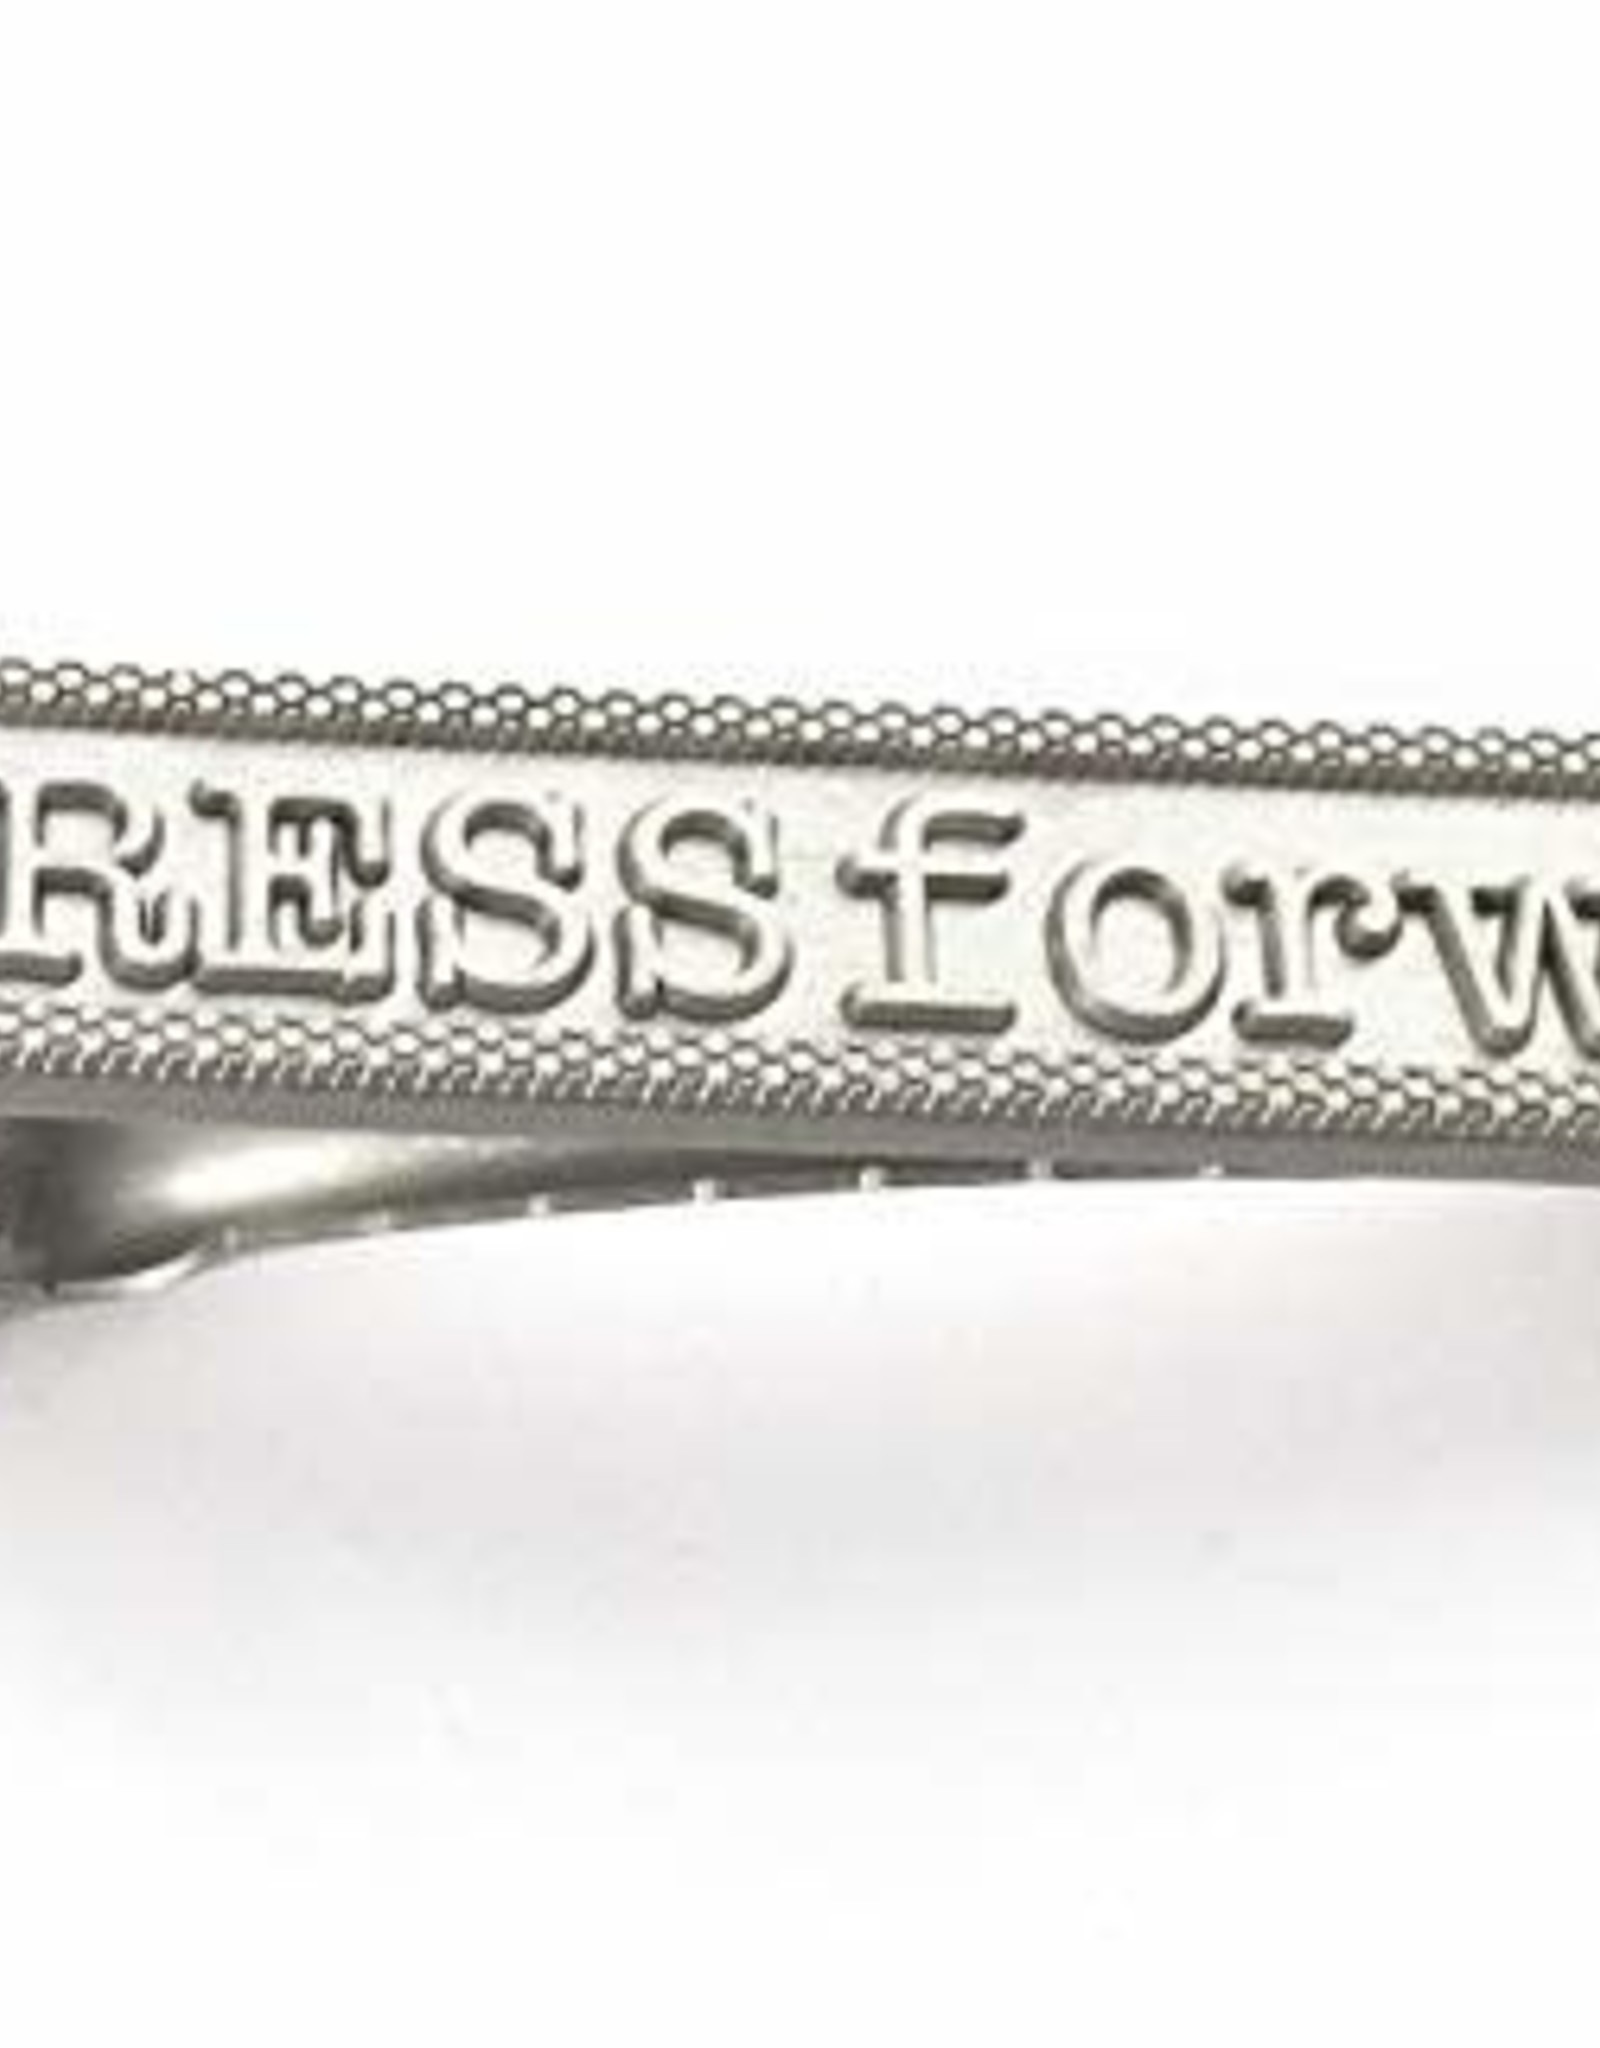 PRESS FORWARD TIE BAR